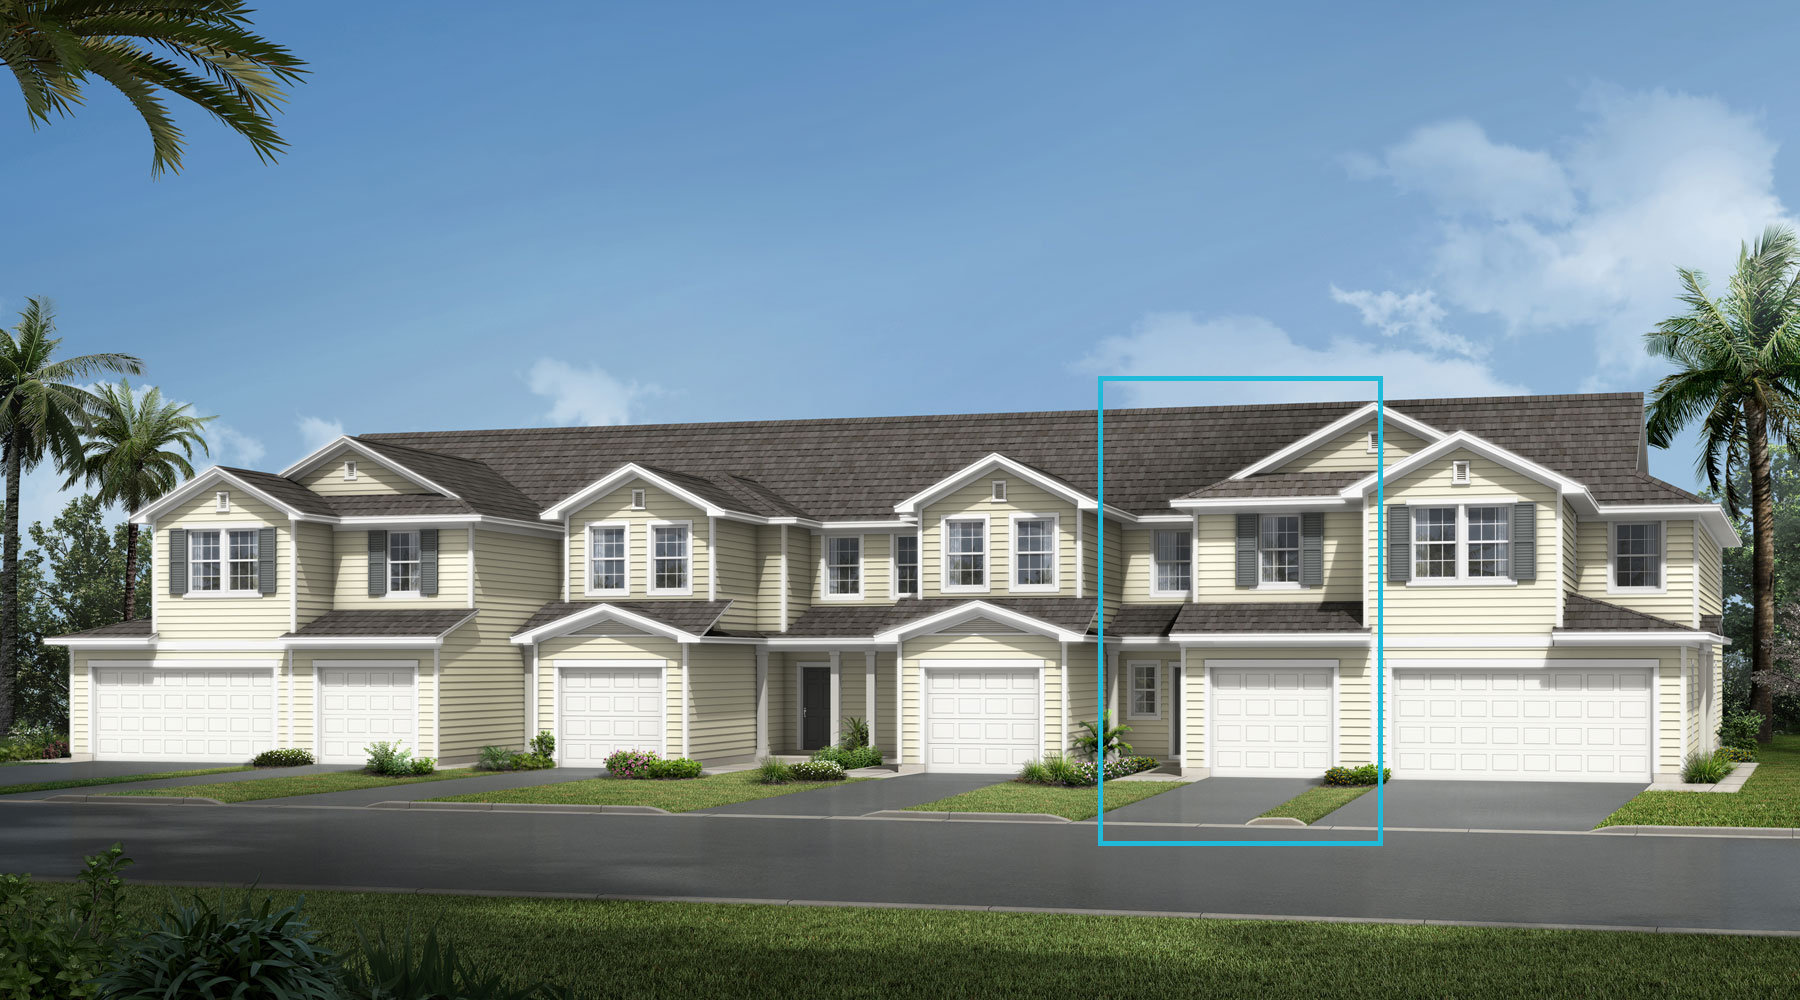 Retreat Plan elevationlowcountry_wellscreek_retreat at Wells Creek in Jacksonville Florida by Mattamy Homes